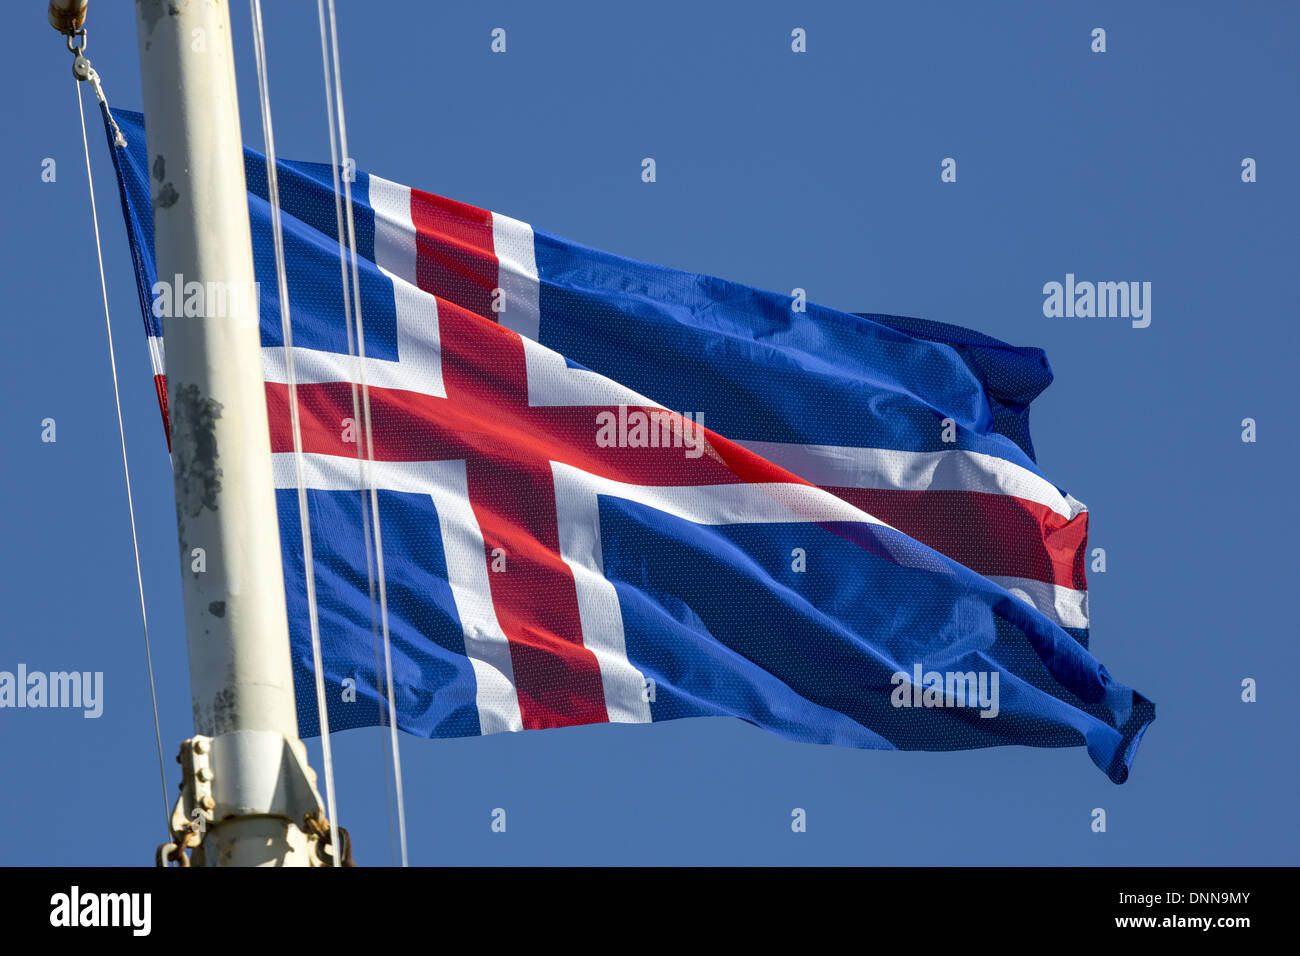 Icelandic Flag flying in bright sunshine from a flag pole - Stock Image